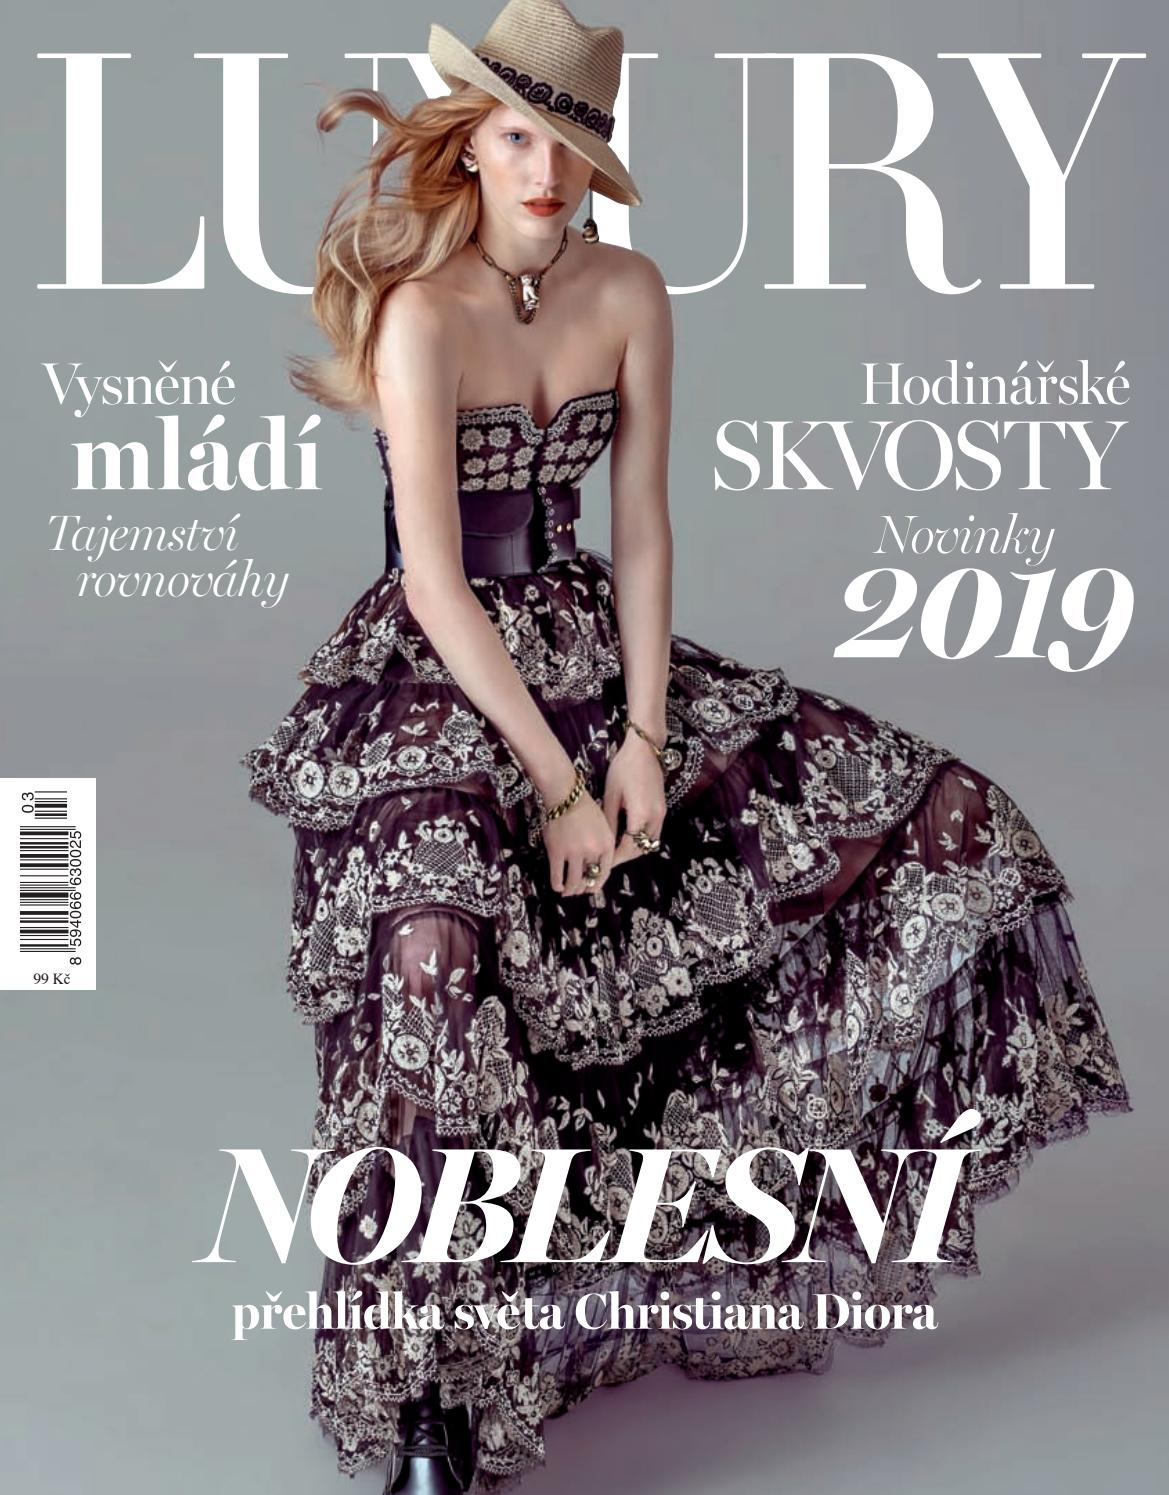 c5f9f1f04a Luxury 03 2019 by LuxuryGuideCZ - issuu